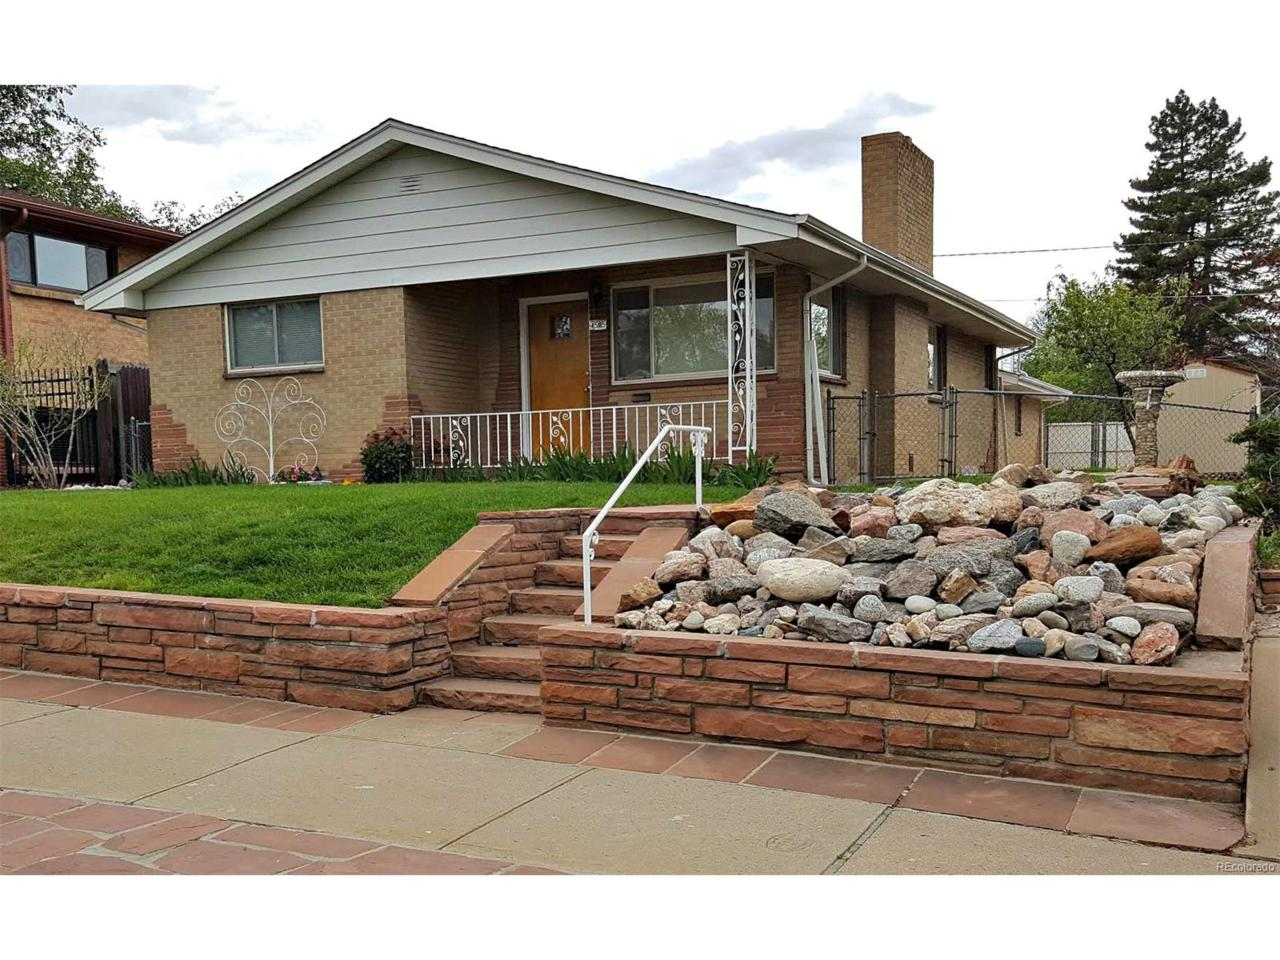 4585 Hooker Street, Denver, CO 80211 (MLS #4844225) :: 8z Real Estate